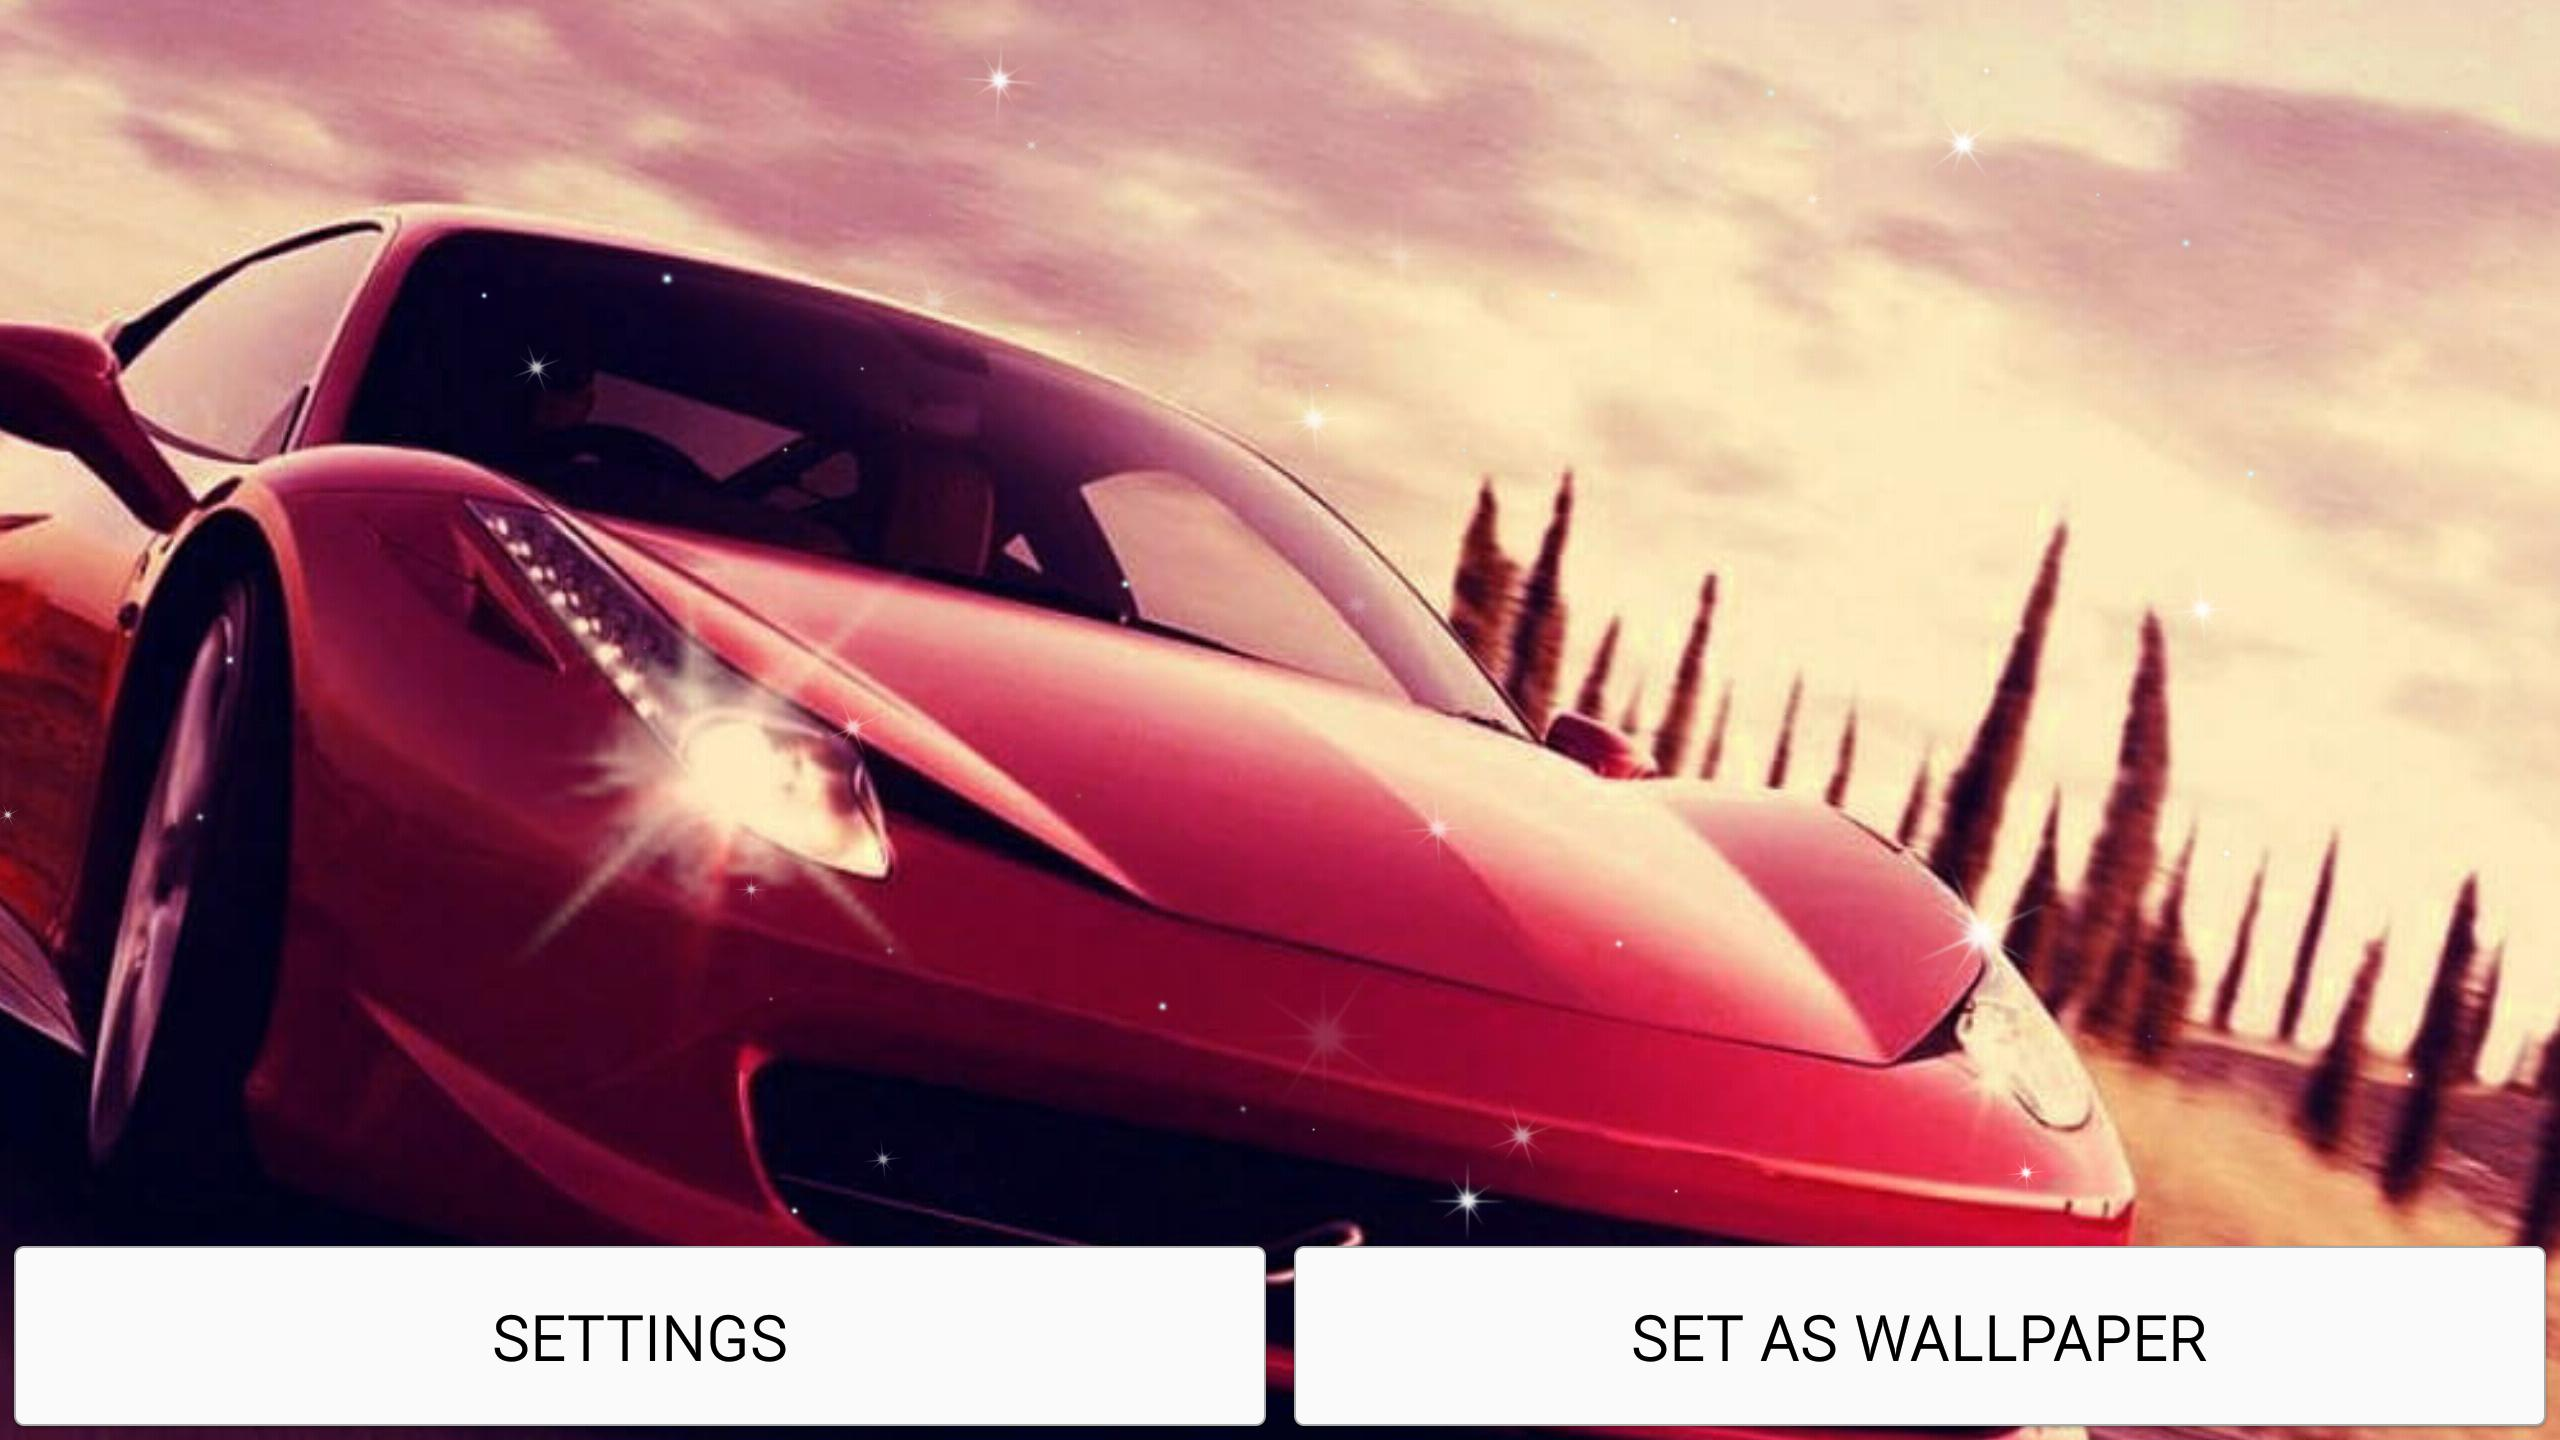 Car Live Wallpaper For Android Apk Download